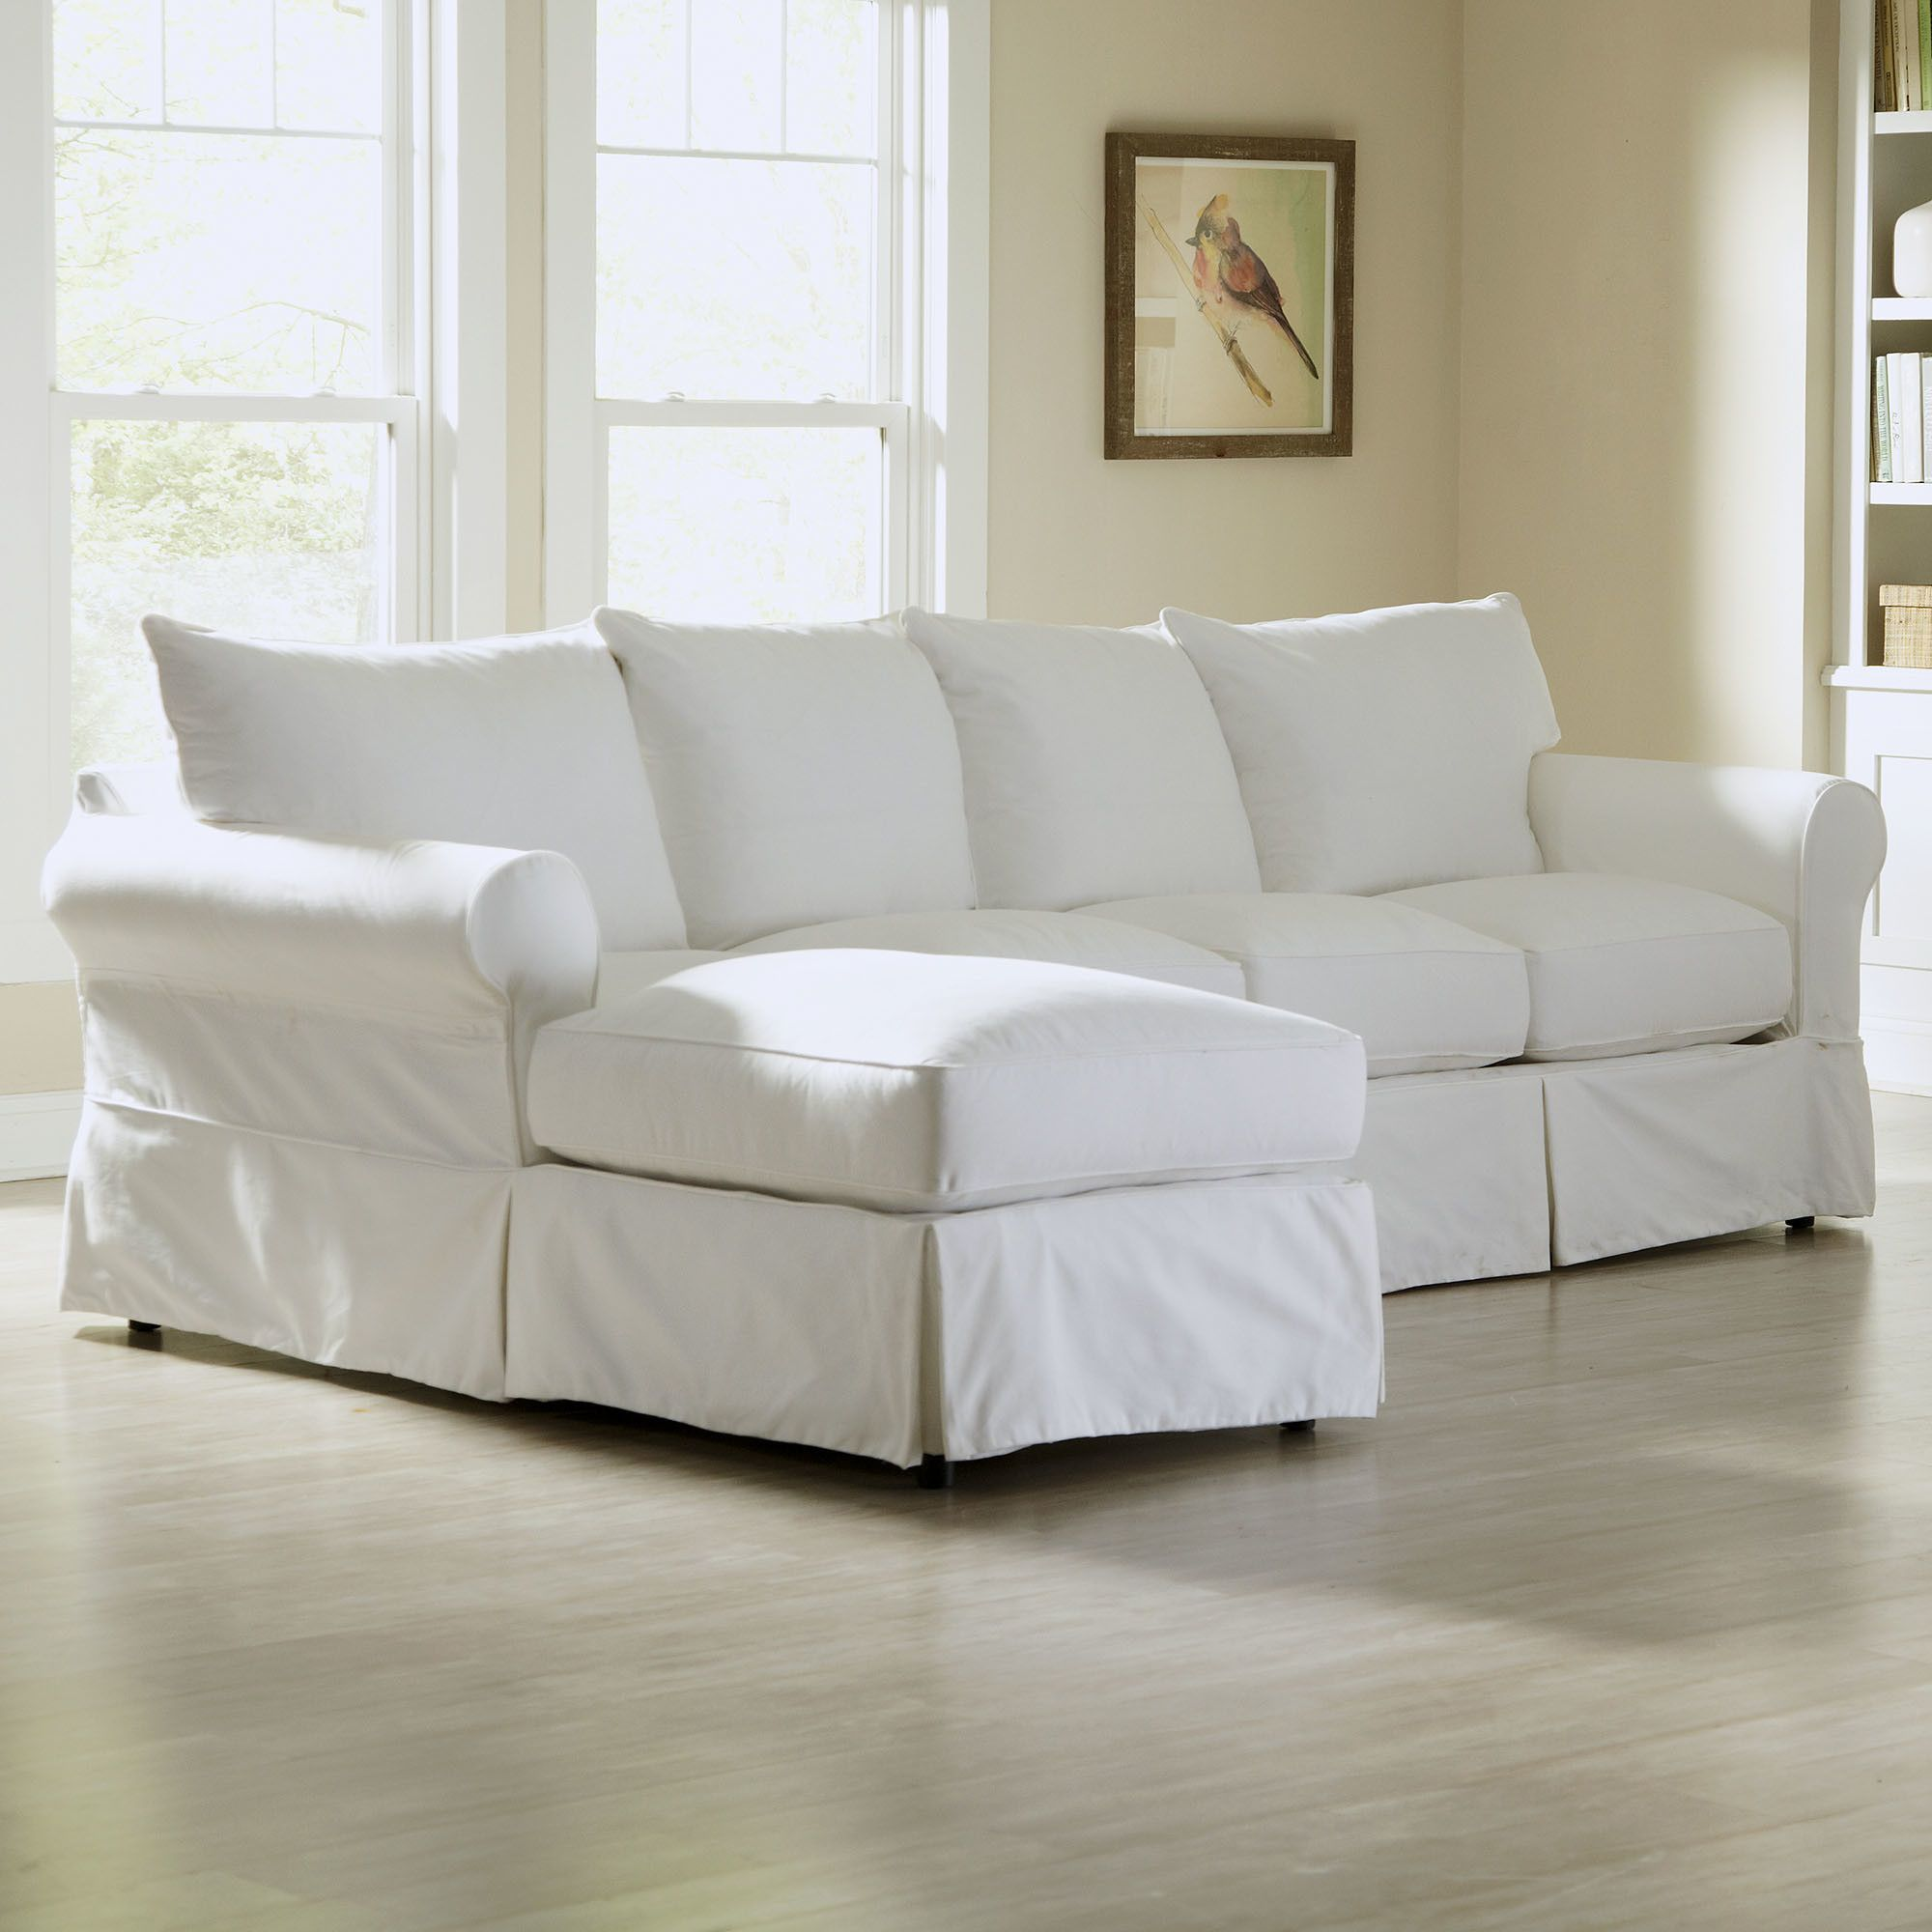 Adjustable Sectional Sofa Bed With Storage Chase Minimalist Home